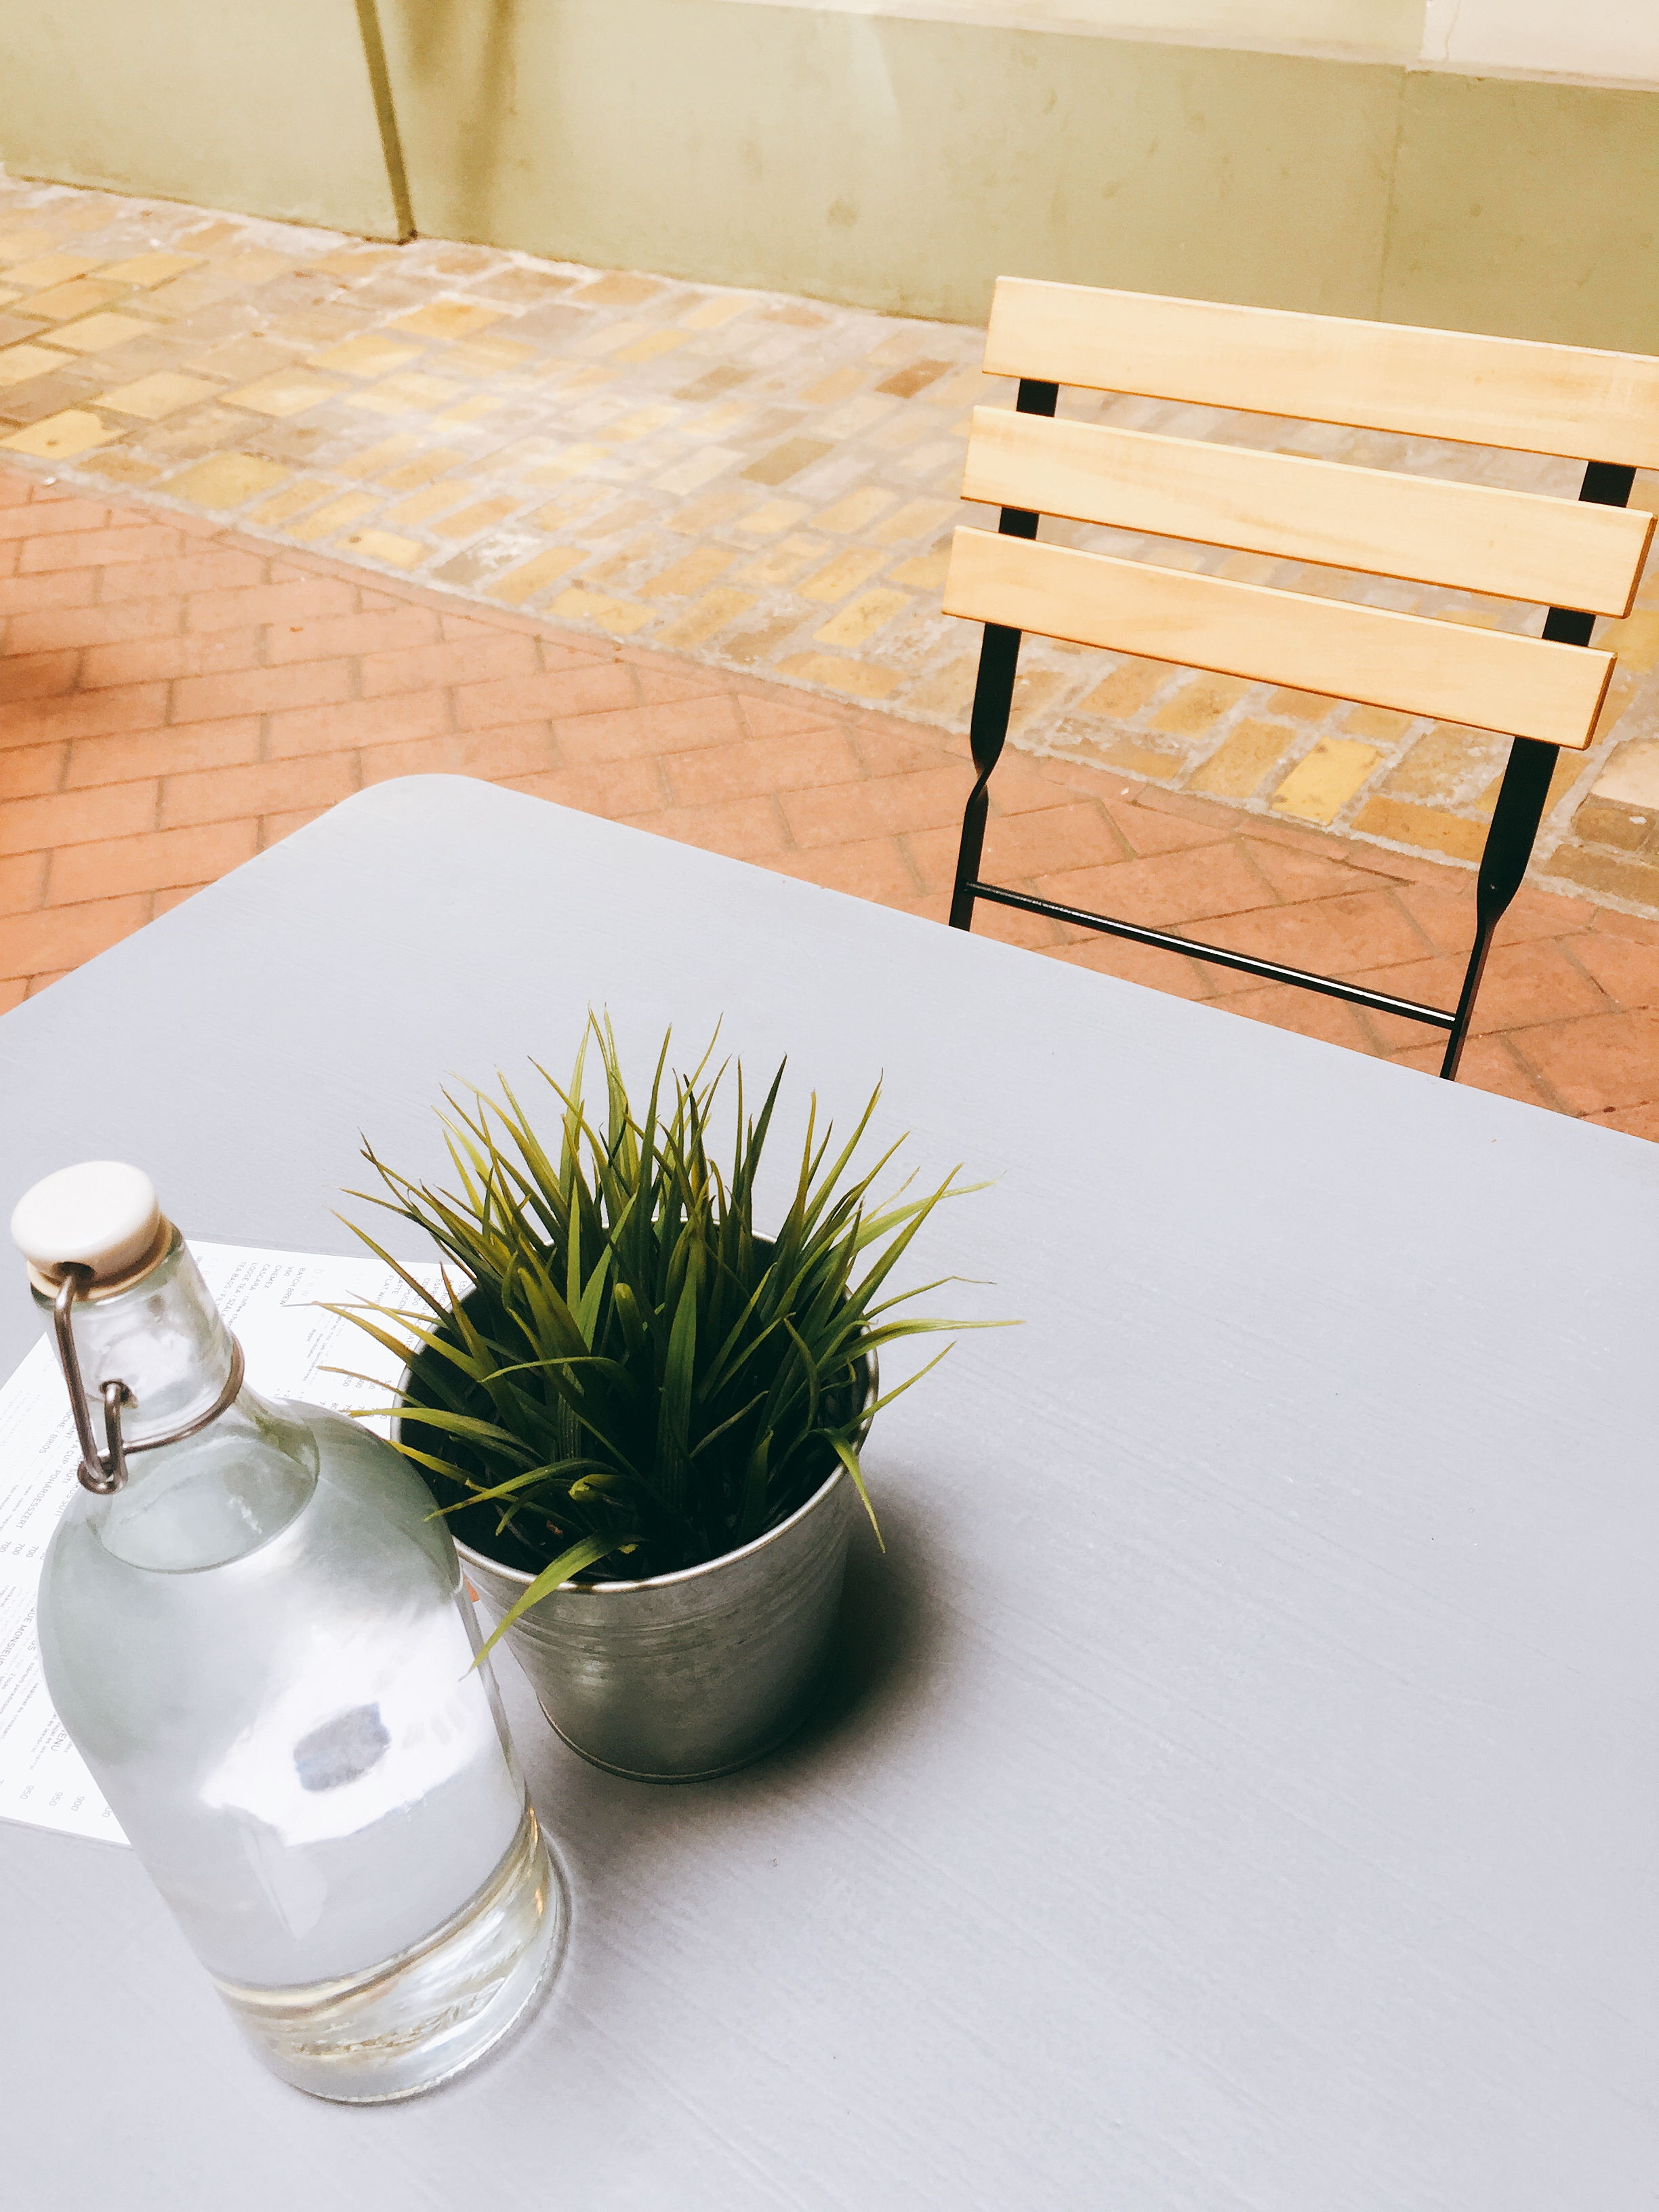 Fekete - Stumbled upon this little cafe with an open courtyard within a neoclassical building -minimalistic interior,Scandinavian vibe, airy space and grab a nitro cold brew on the go!